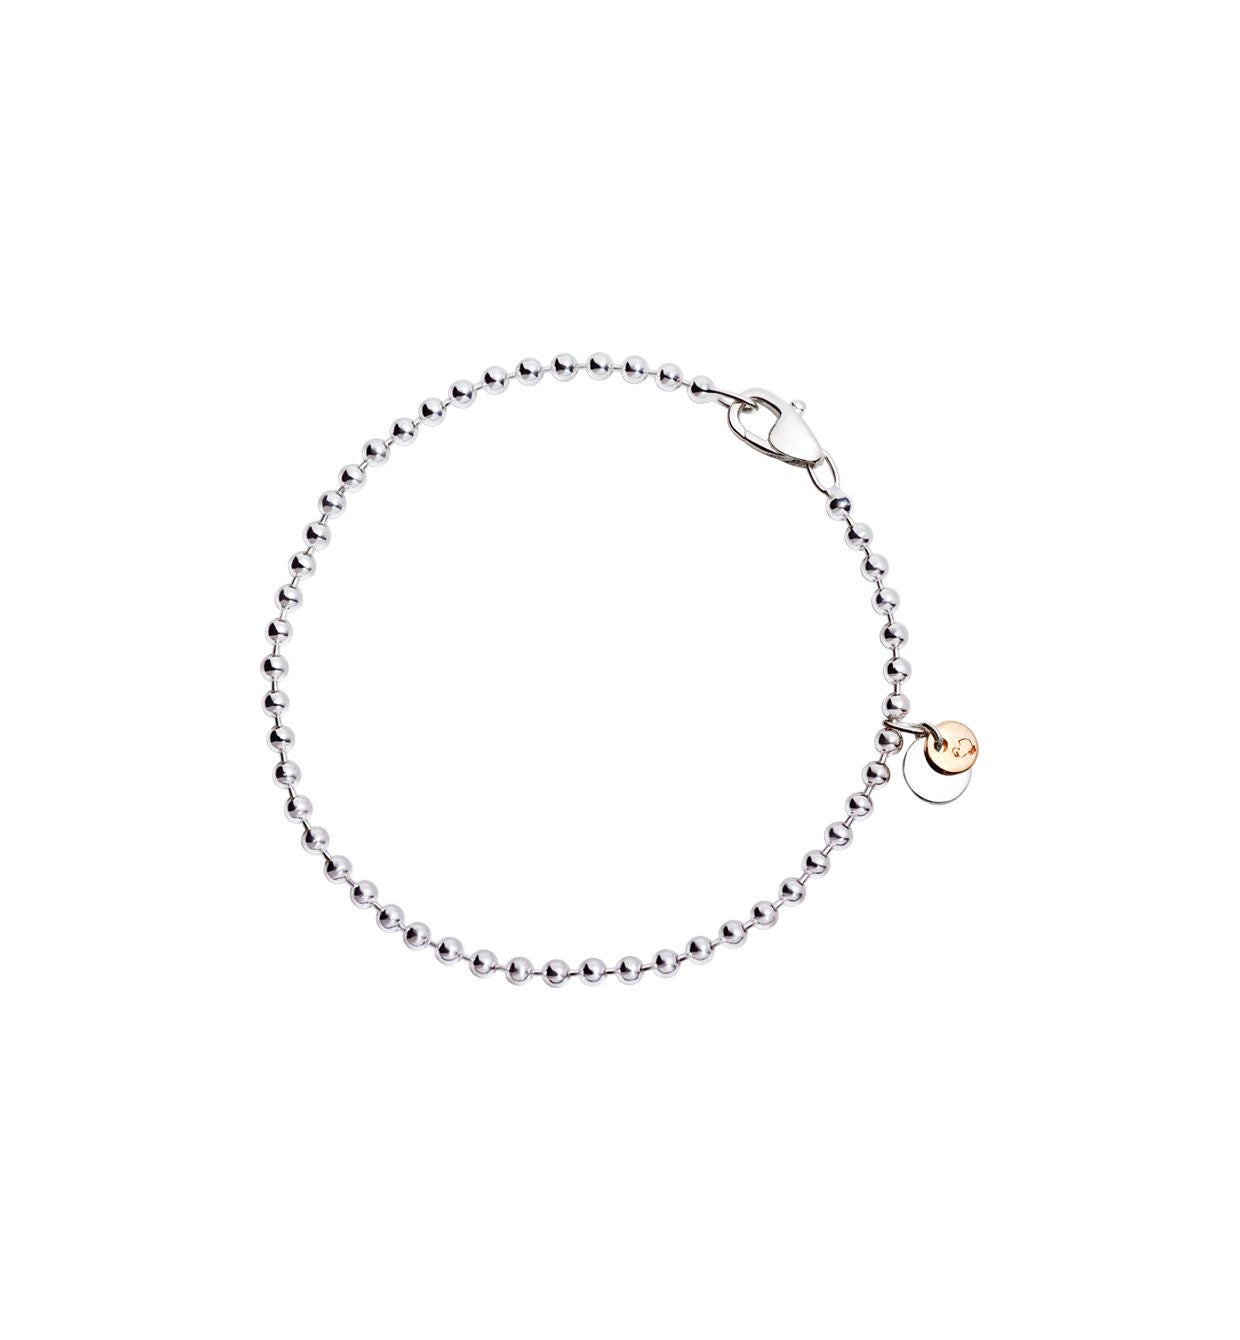 DoDo Bollicine Bracelet in Silver with Plaquettes in 9k Rose Gold and Silver - Orsini Jewellers NZ